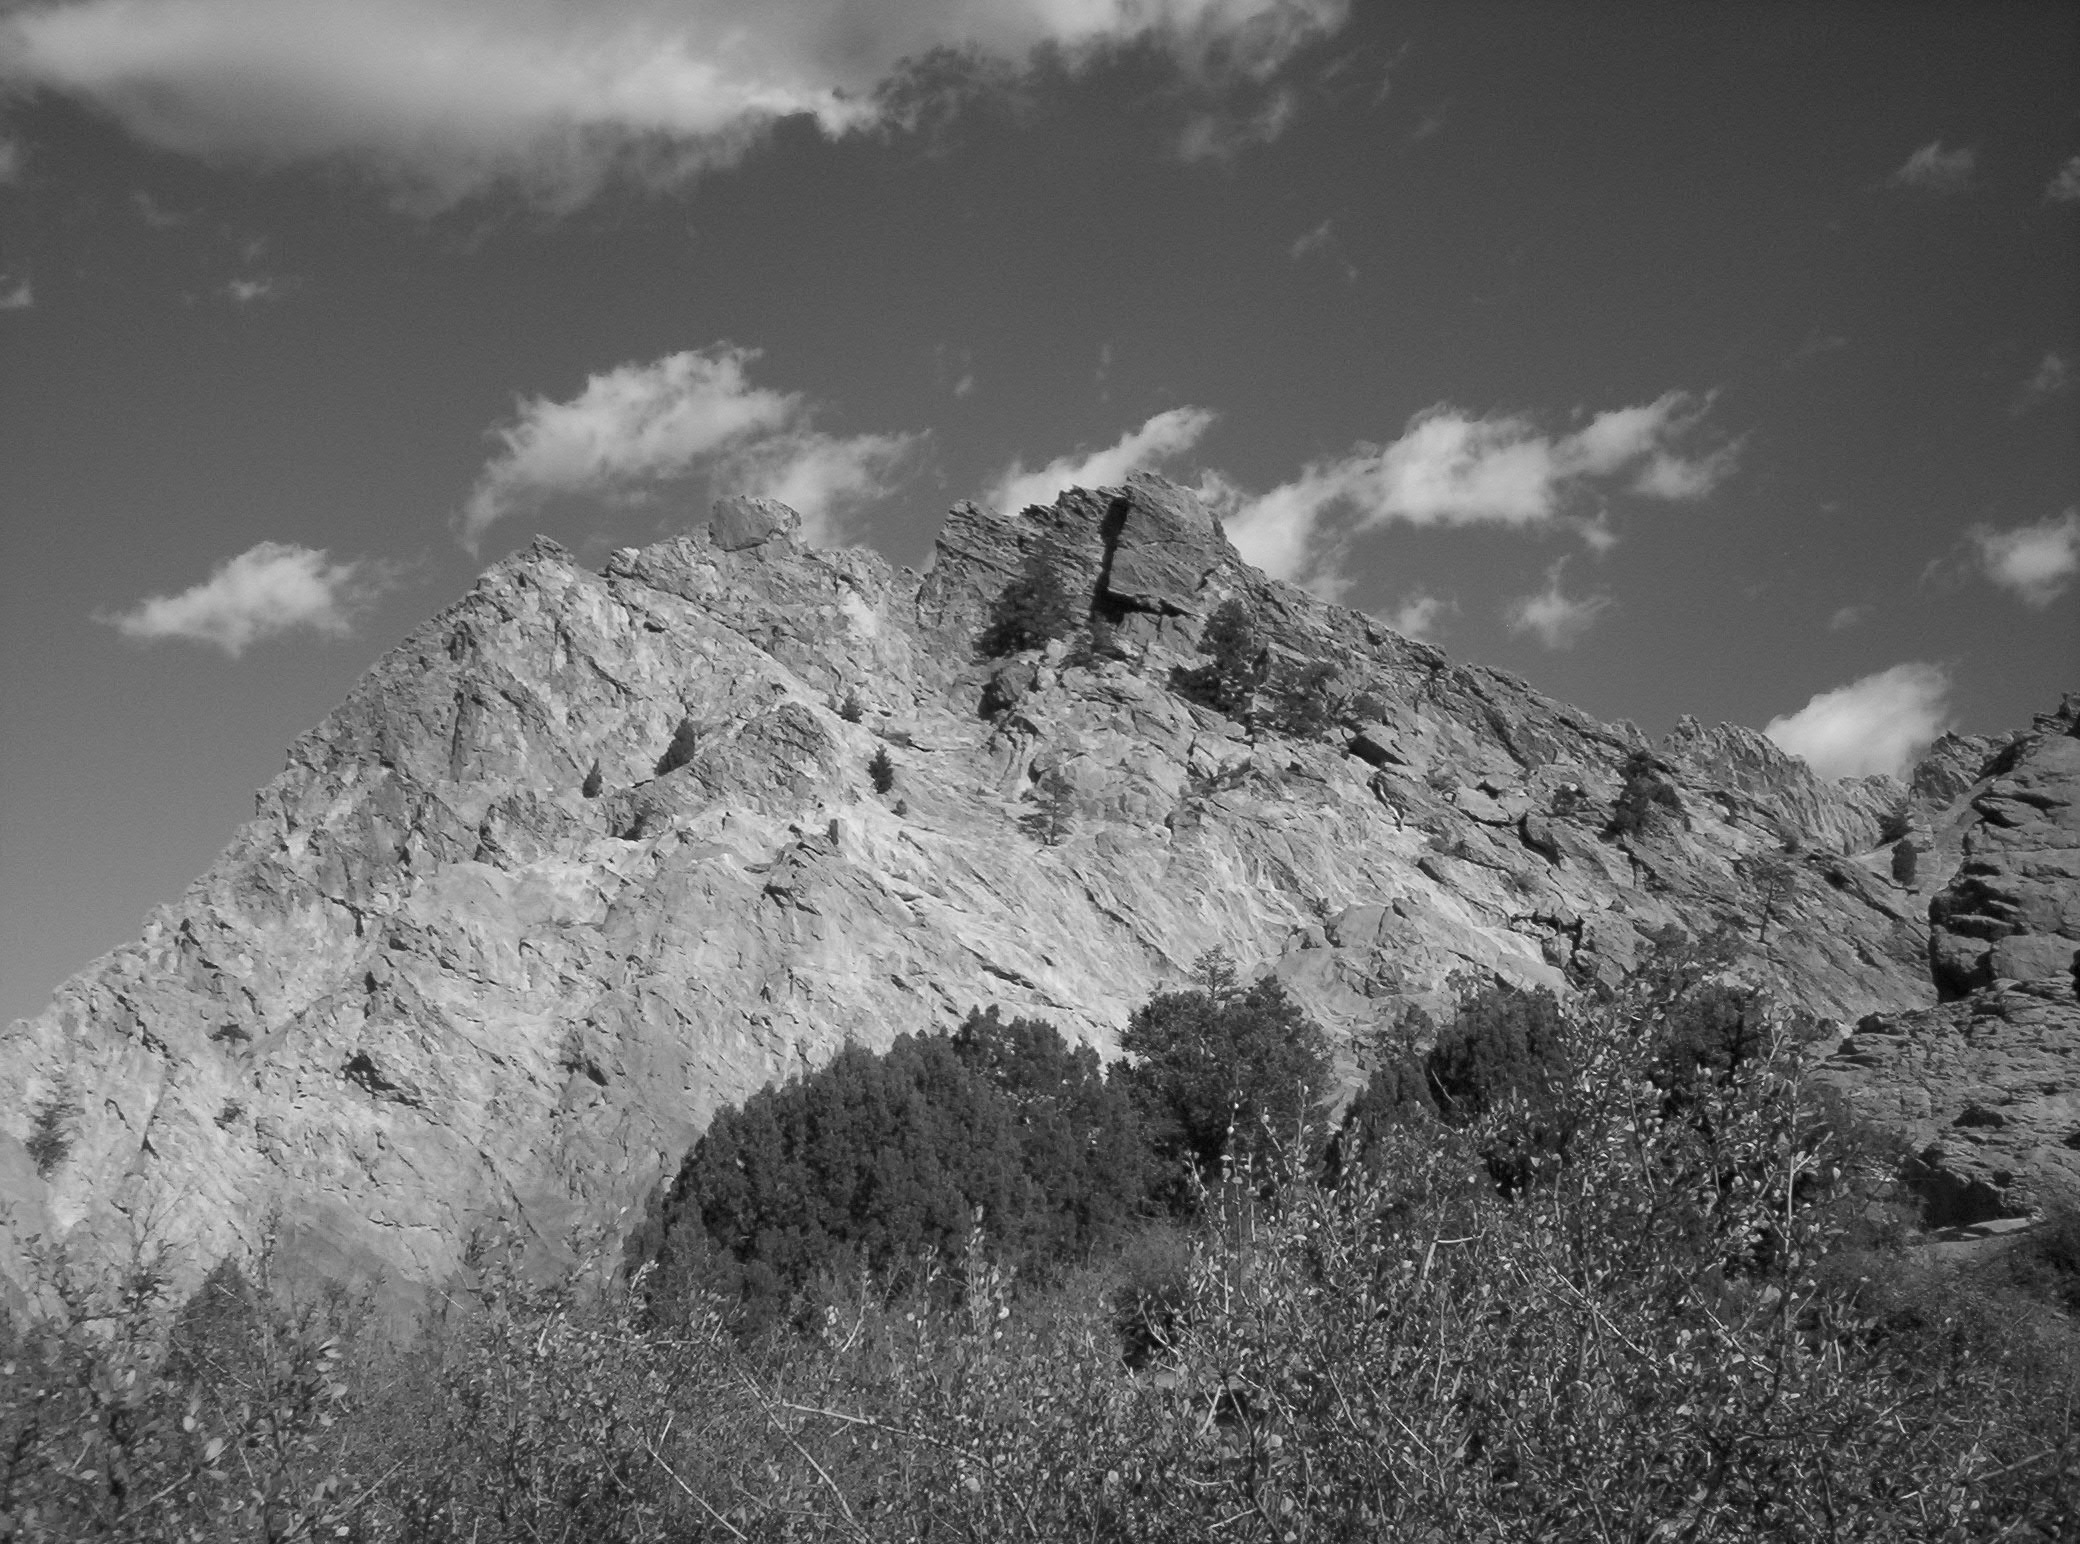 Flat Butte Copyright © 2008 David M. Bandler, All Rights Reserved.